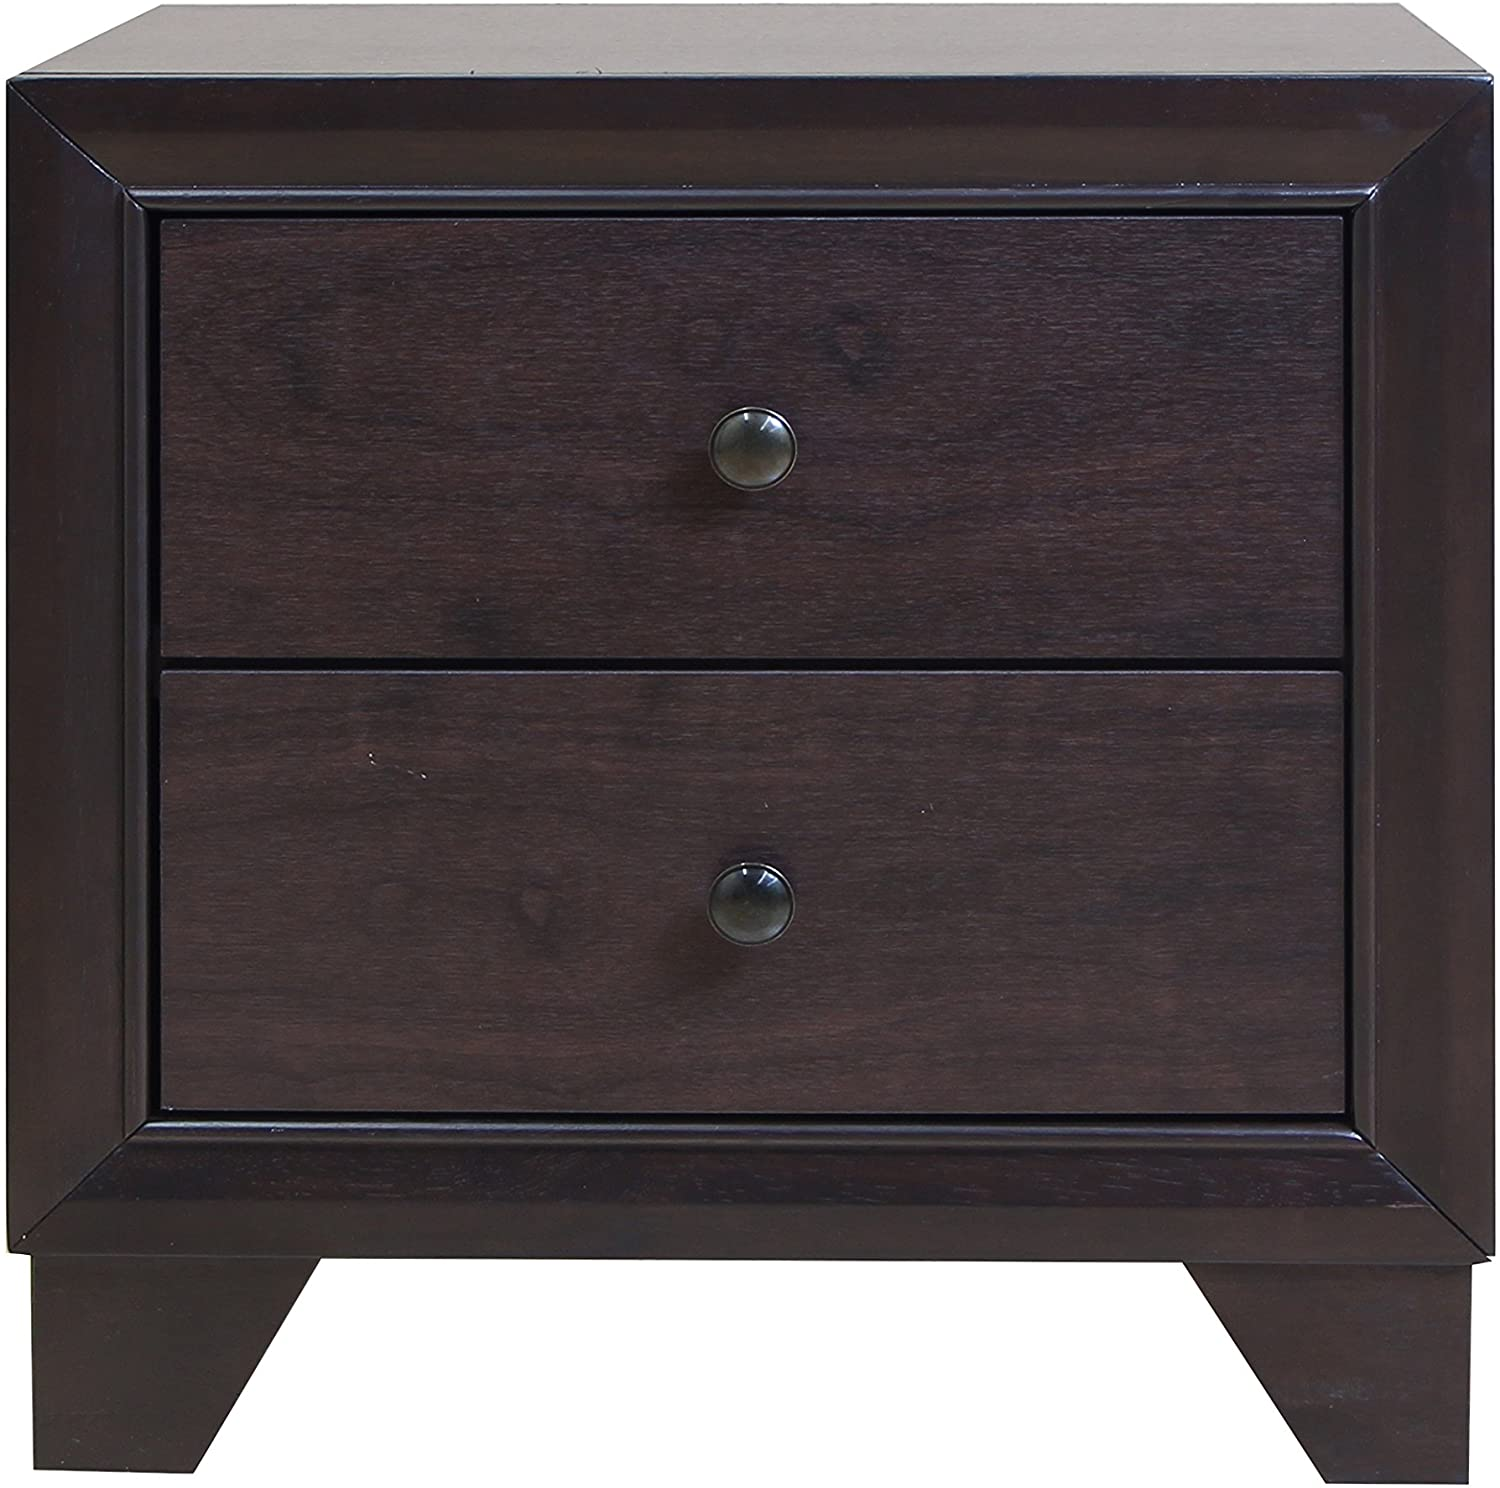 "22"" X 16"" X 22"" Espresso Rubber Wood Nightstand"